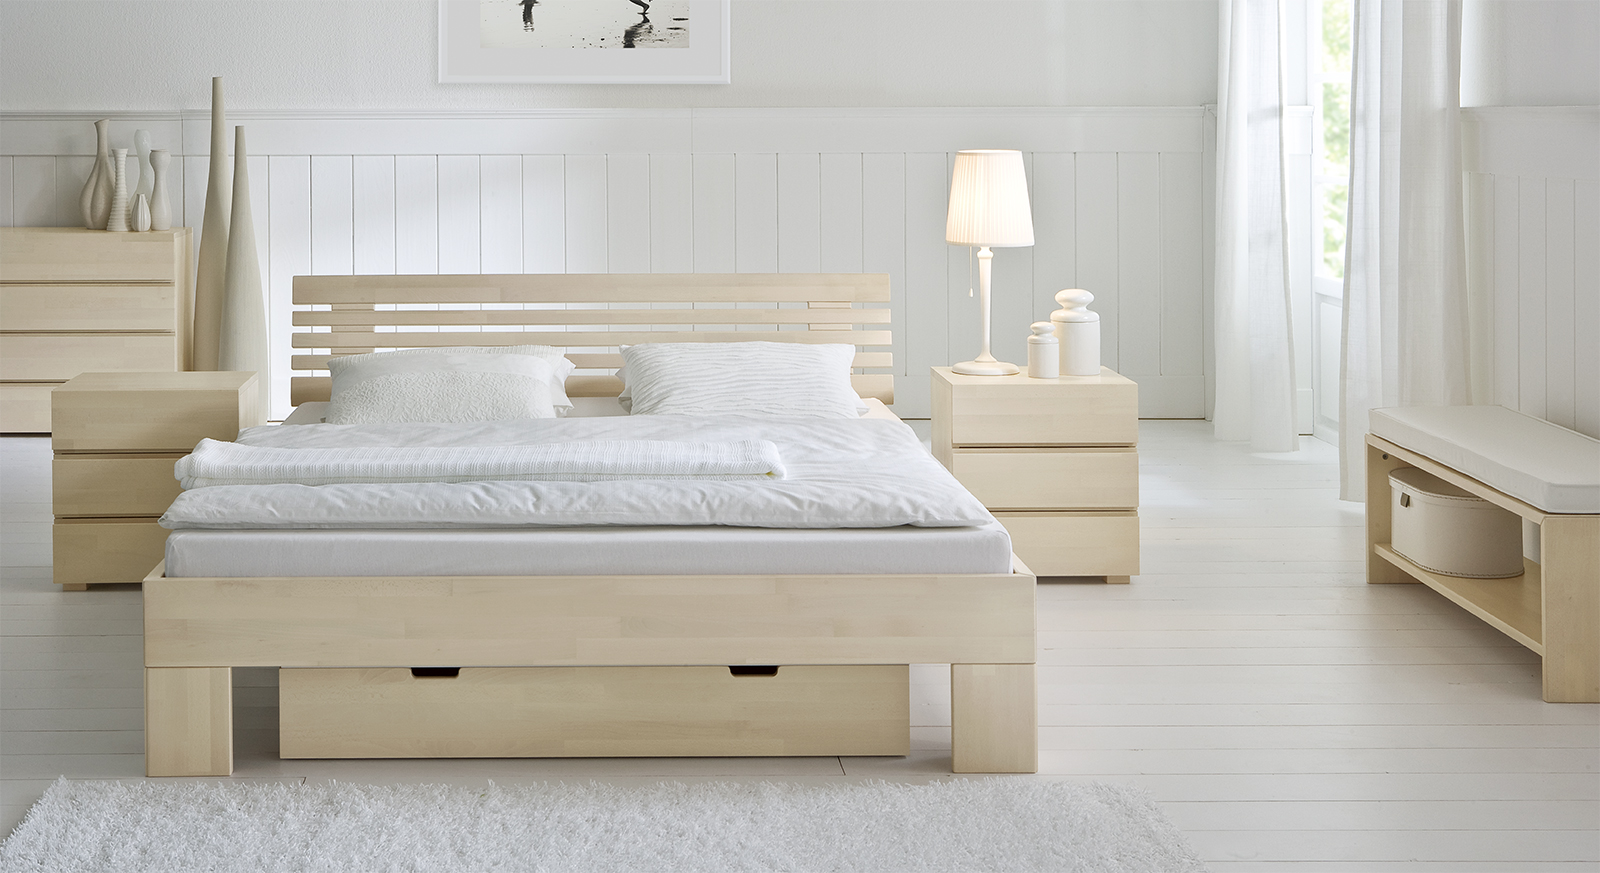 stilvolles massivholzbett aus buche white romance. Black Bedroom Furniture Sets. Home Design Ideas